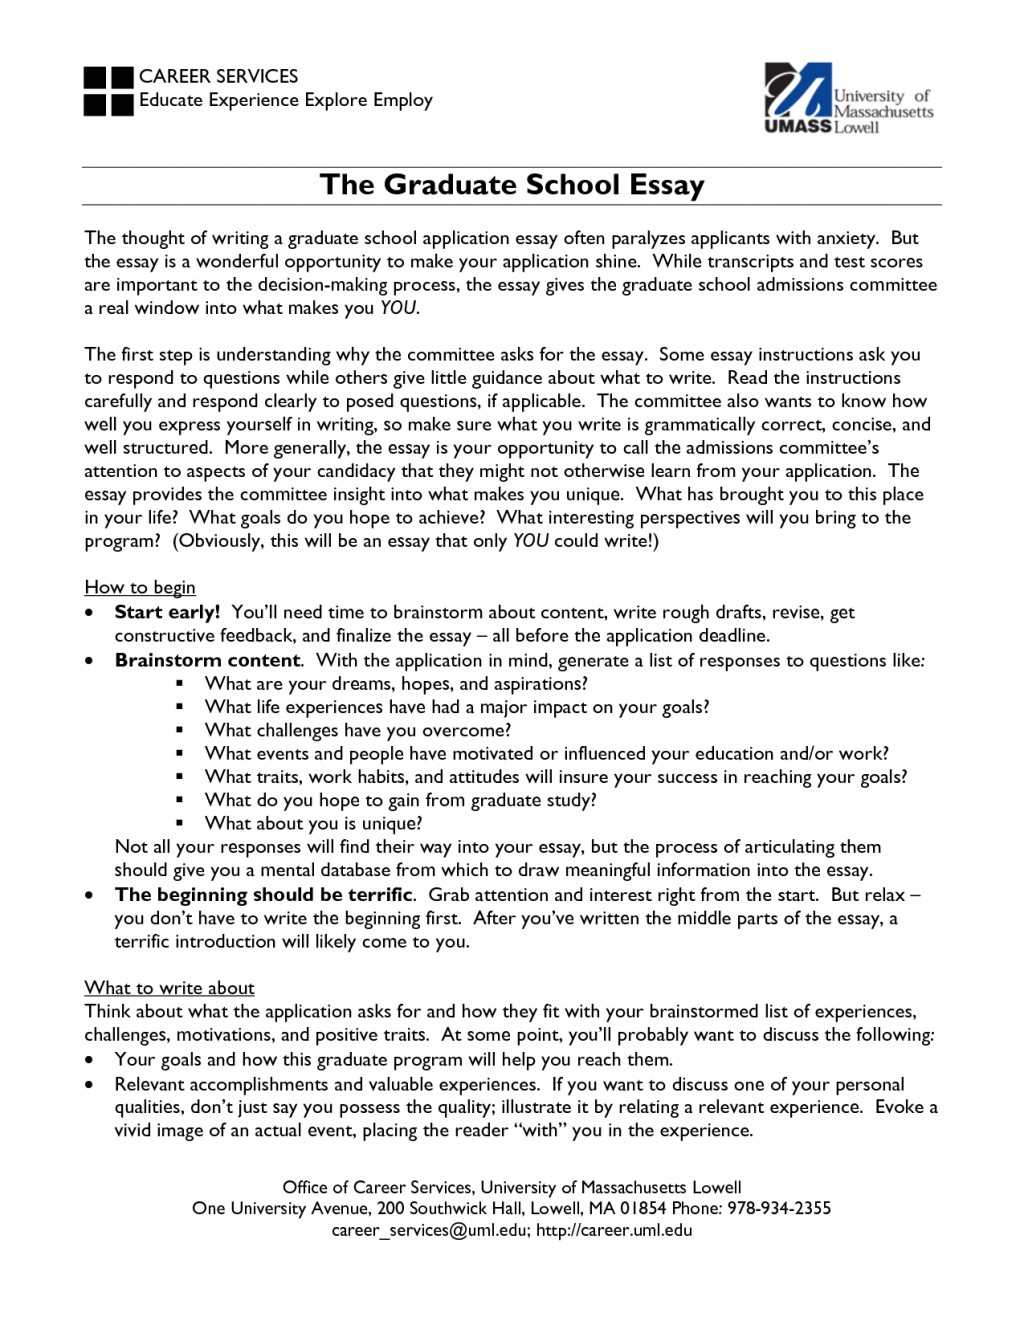 015 Essay Example 36nyax20x5 Excellent Graduation College Ideas Large